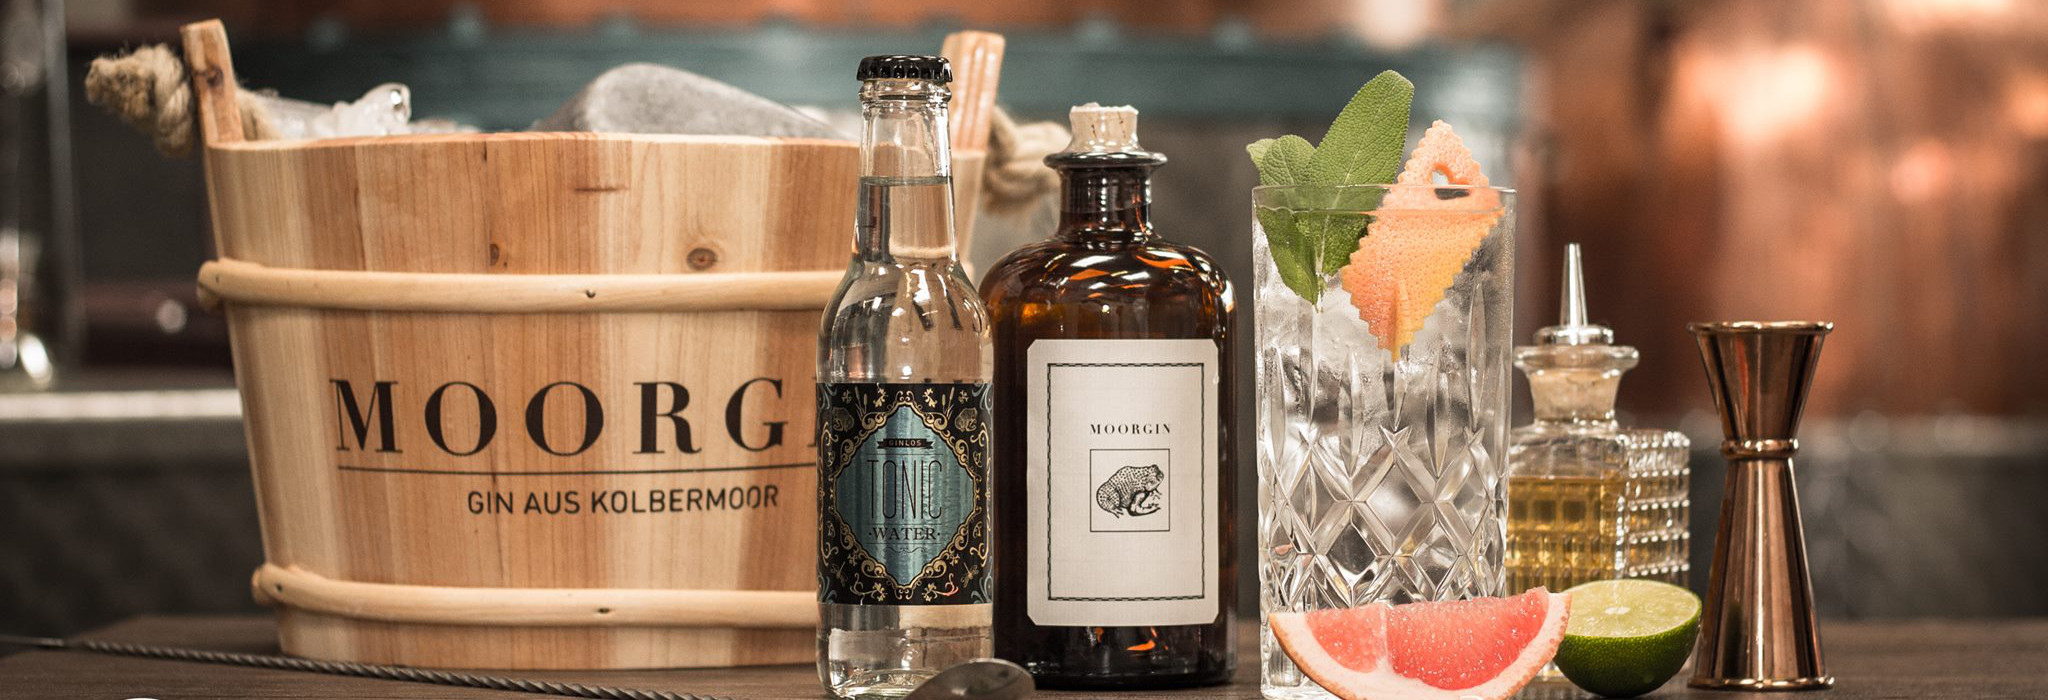 MOORGIN - Gin aus Kolbermoor - Cocktail Bar - Header